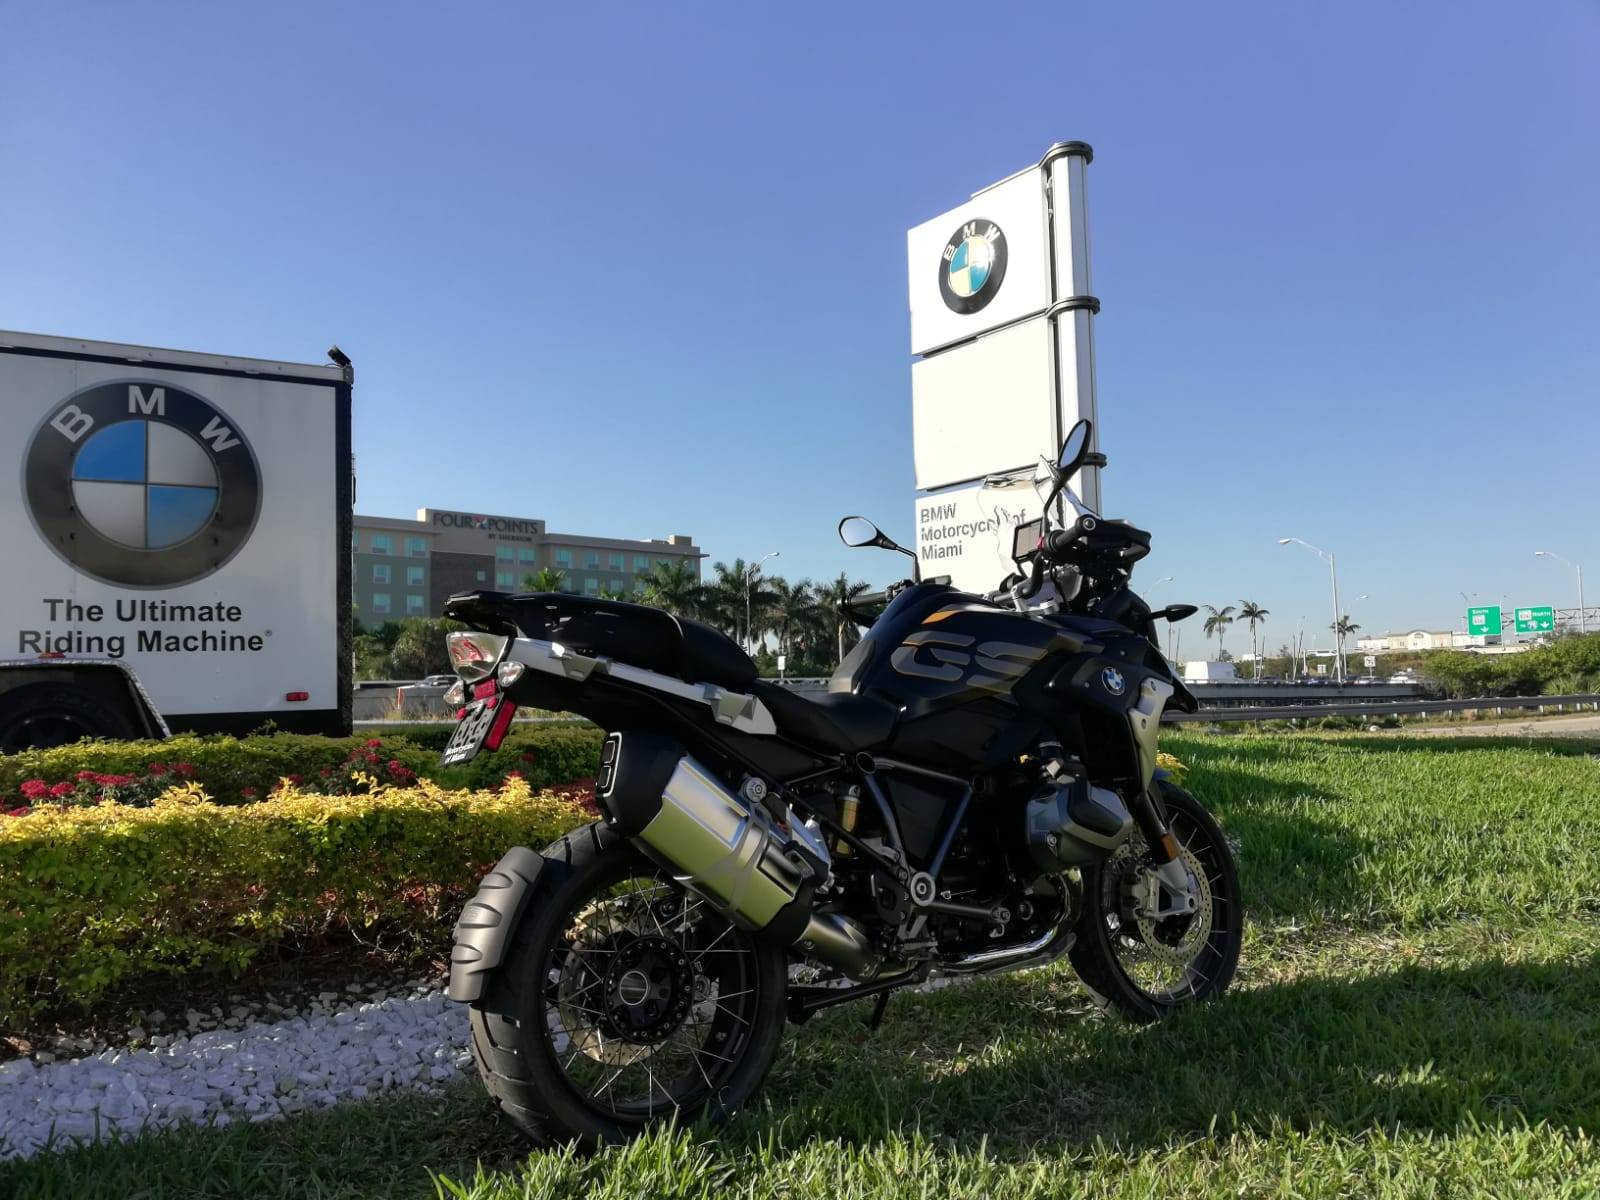 New 2019 BMW R 1250 GS for sale, BMW R 1250GS for sale, BMW Motorcycle GS, new BMW GS, Spirit of GS, BMW Motorcycles of Miami, Motorcycles of Miami, Motorcycles Miami, New Motorcycles, Used Motorcycles, pre-owned. #BMWMotorcyclesOfMiami #MotorcyclesOfMiami. - Photo 20